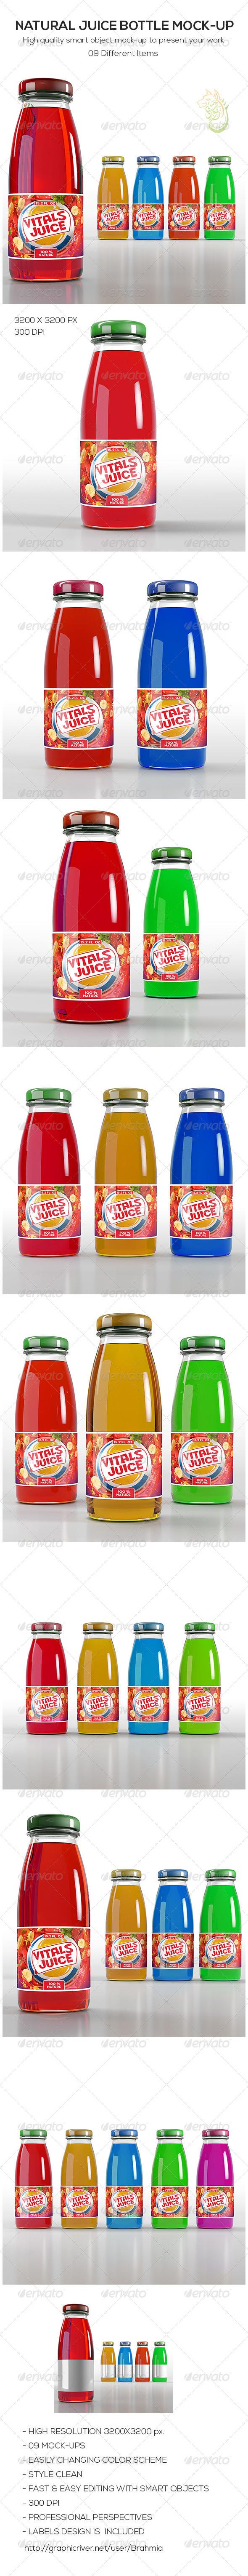 GraphicRiver Natural Juice Bottle Mock-Up 8676986